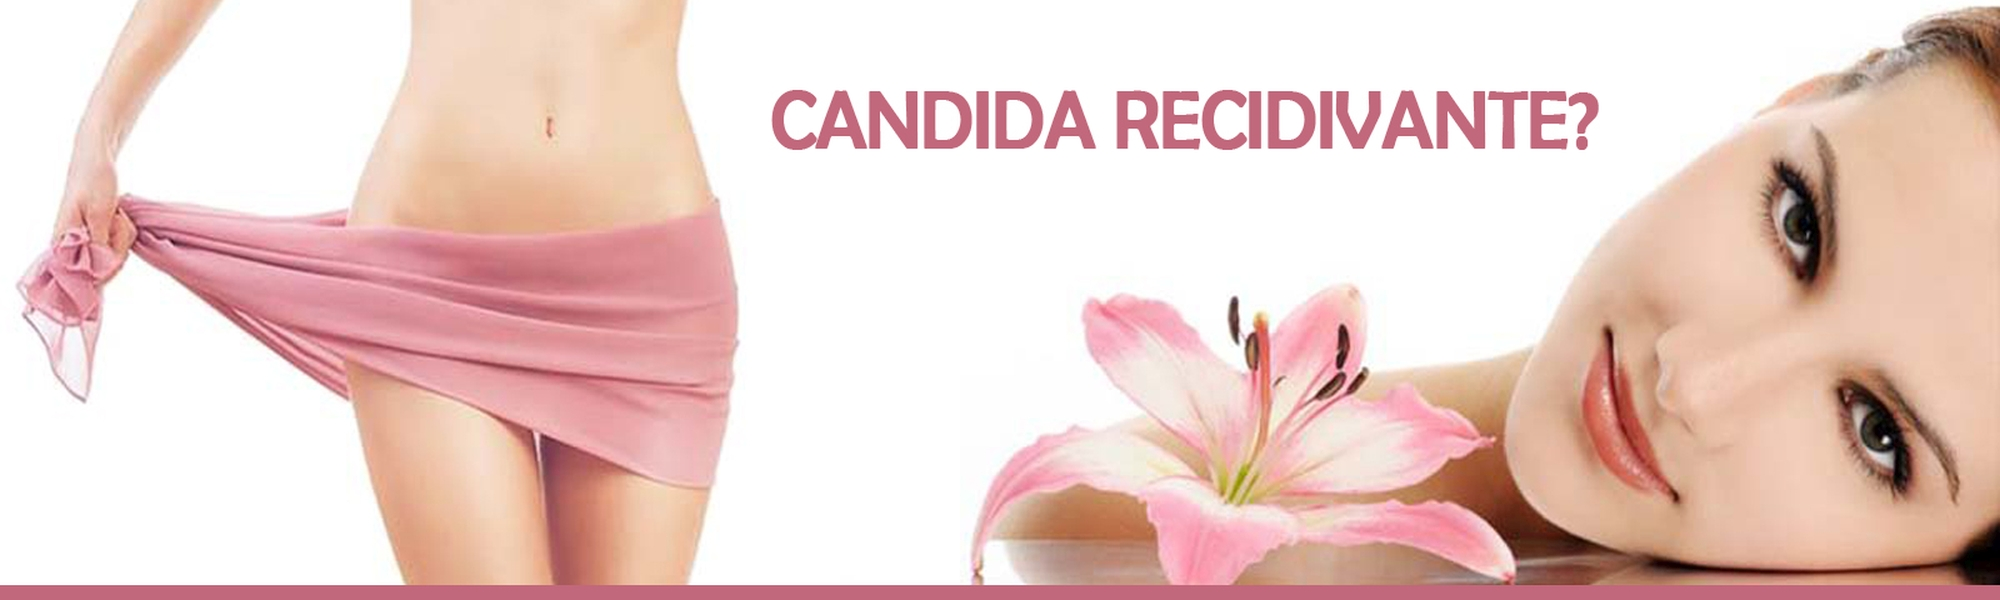 Candida Recidivante